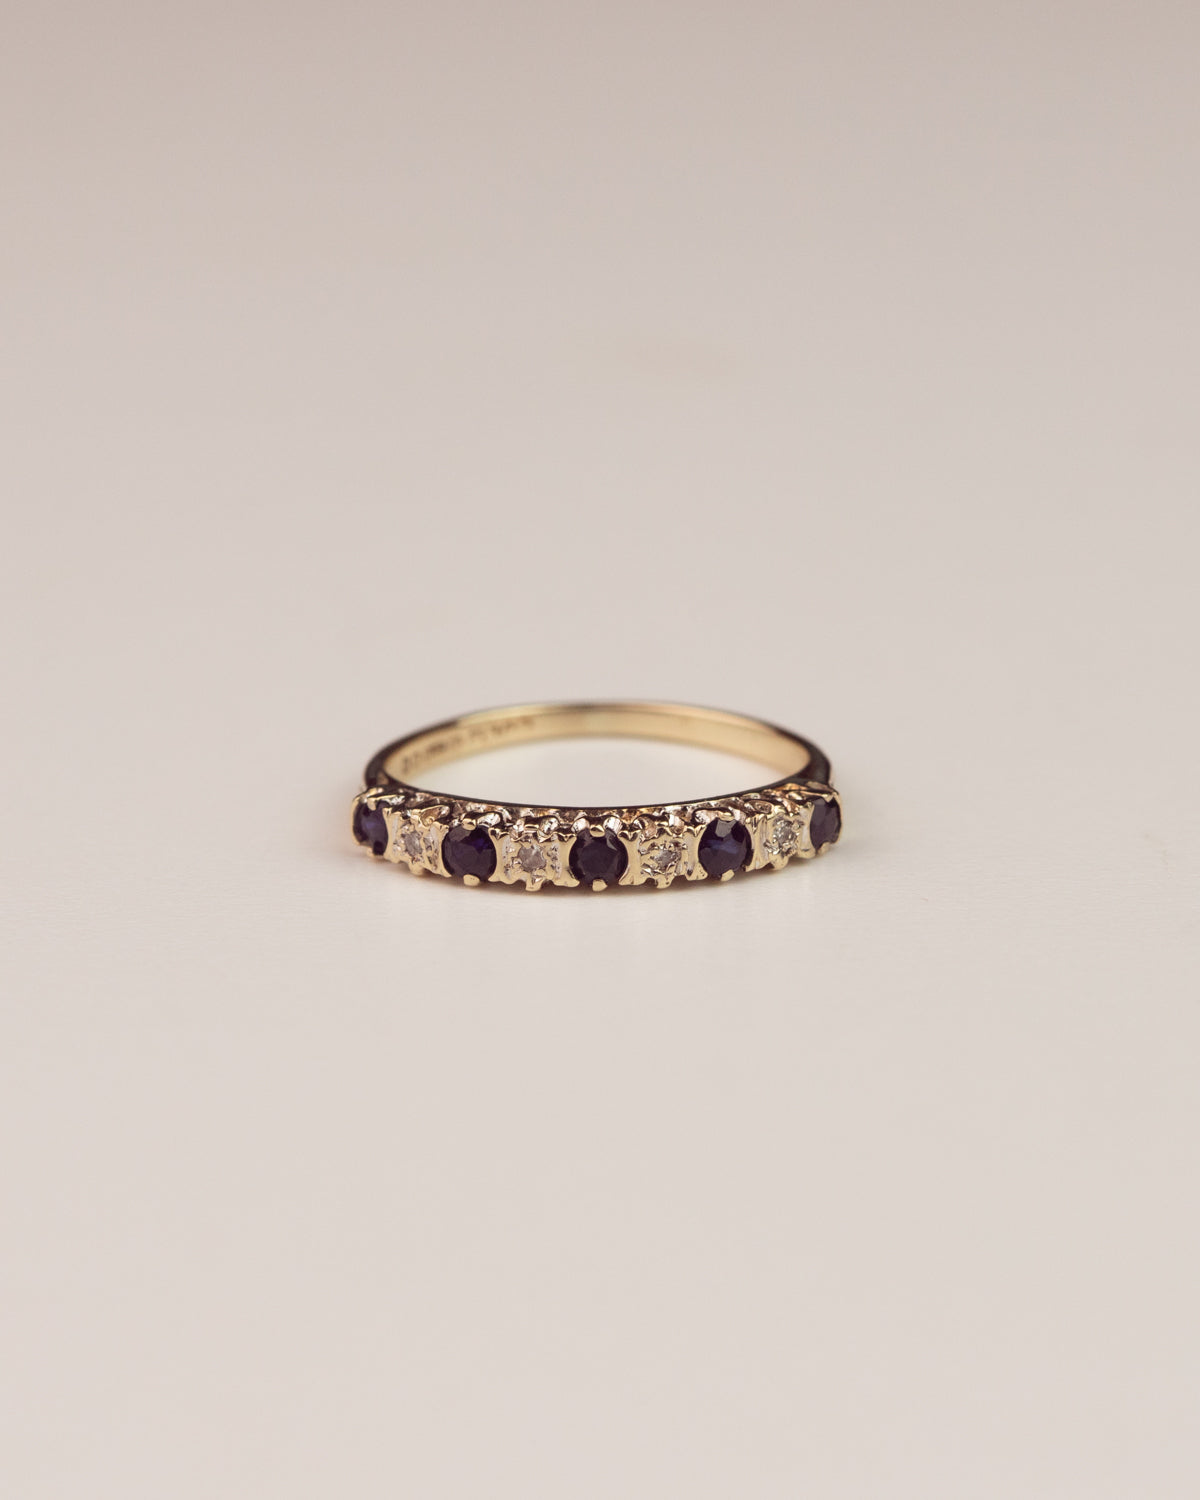 Allegra Exclusive Vintage 9ct Gold Diamond and Sapphire Ring